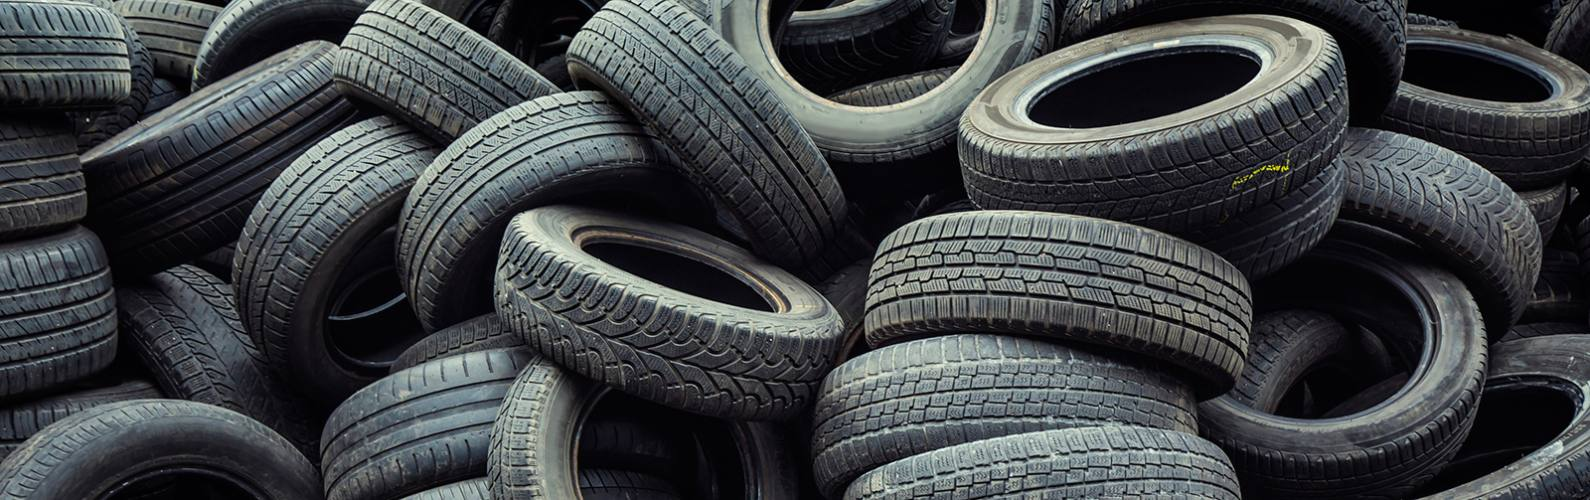 How do you solve a problem like 40m waste car tyres a year?